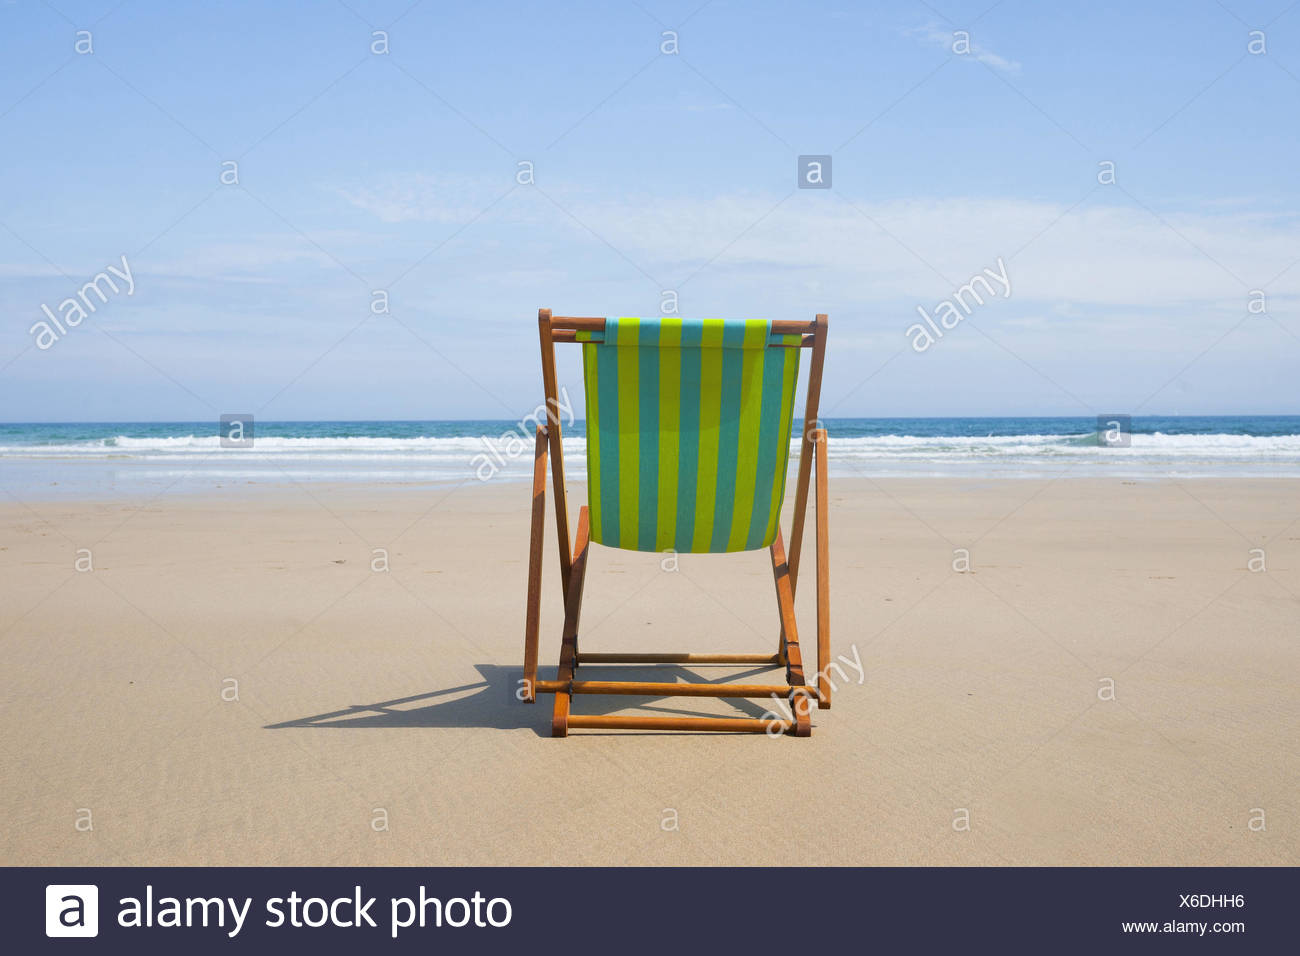 Sunbed on the beach, - Stock Image